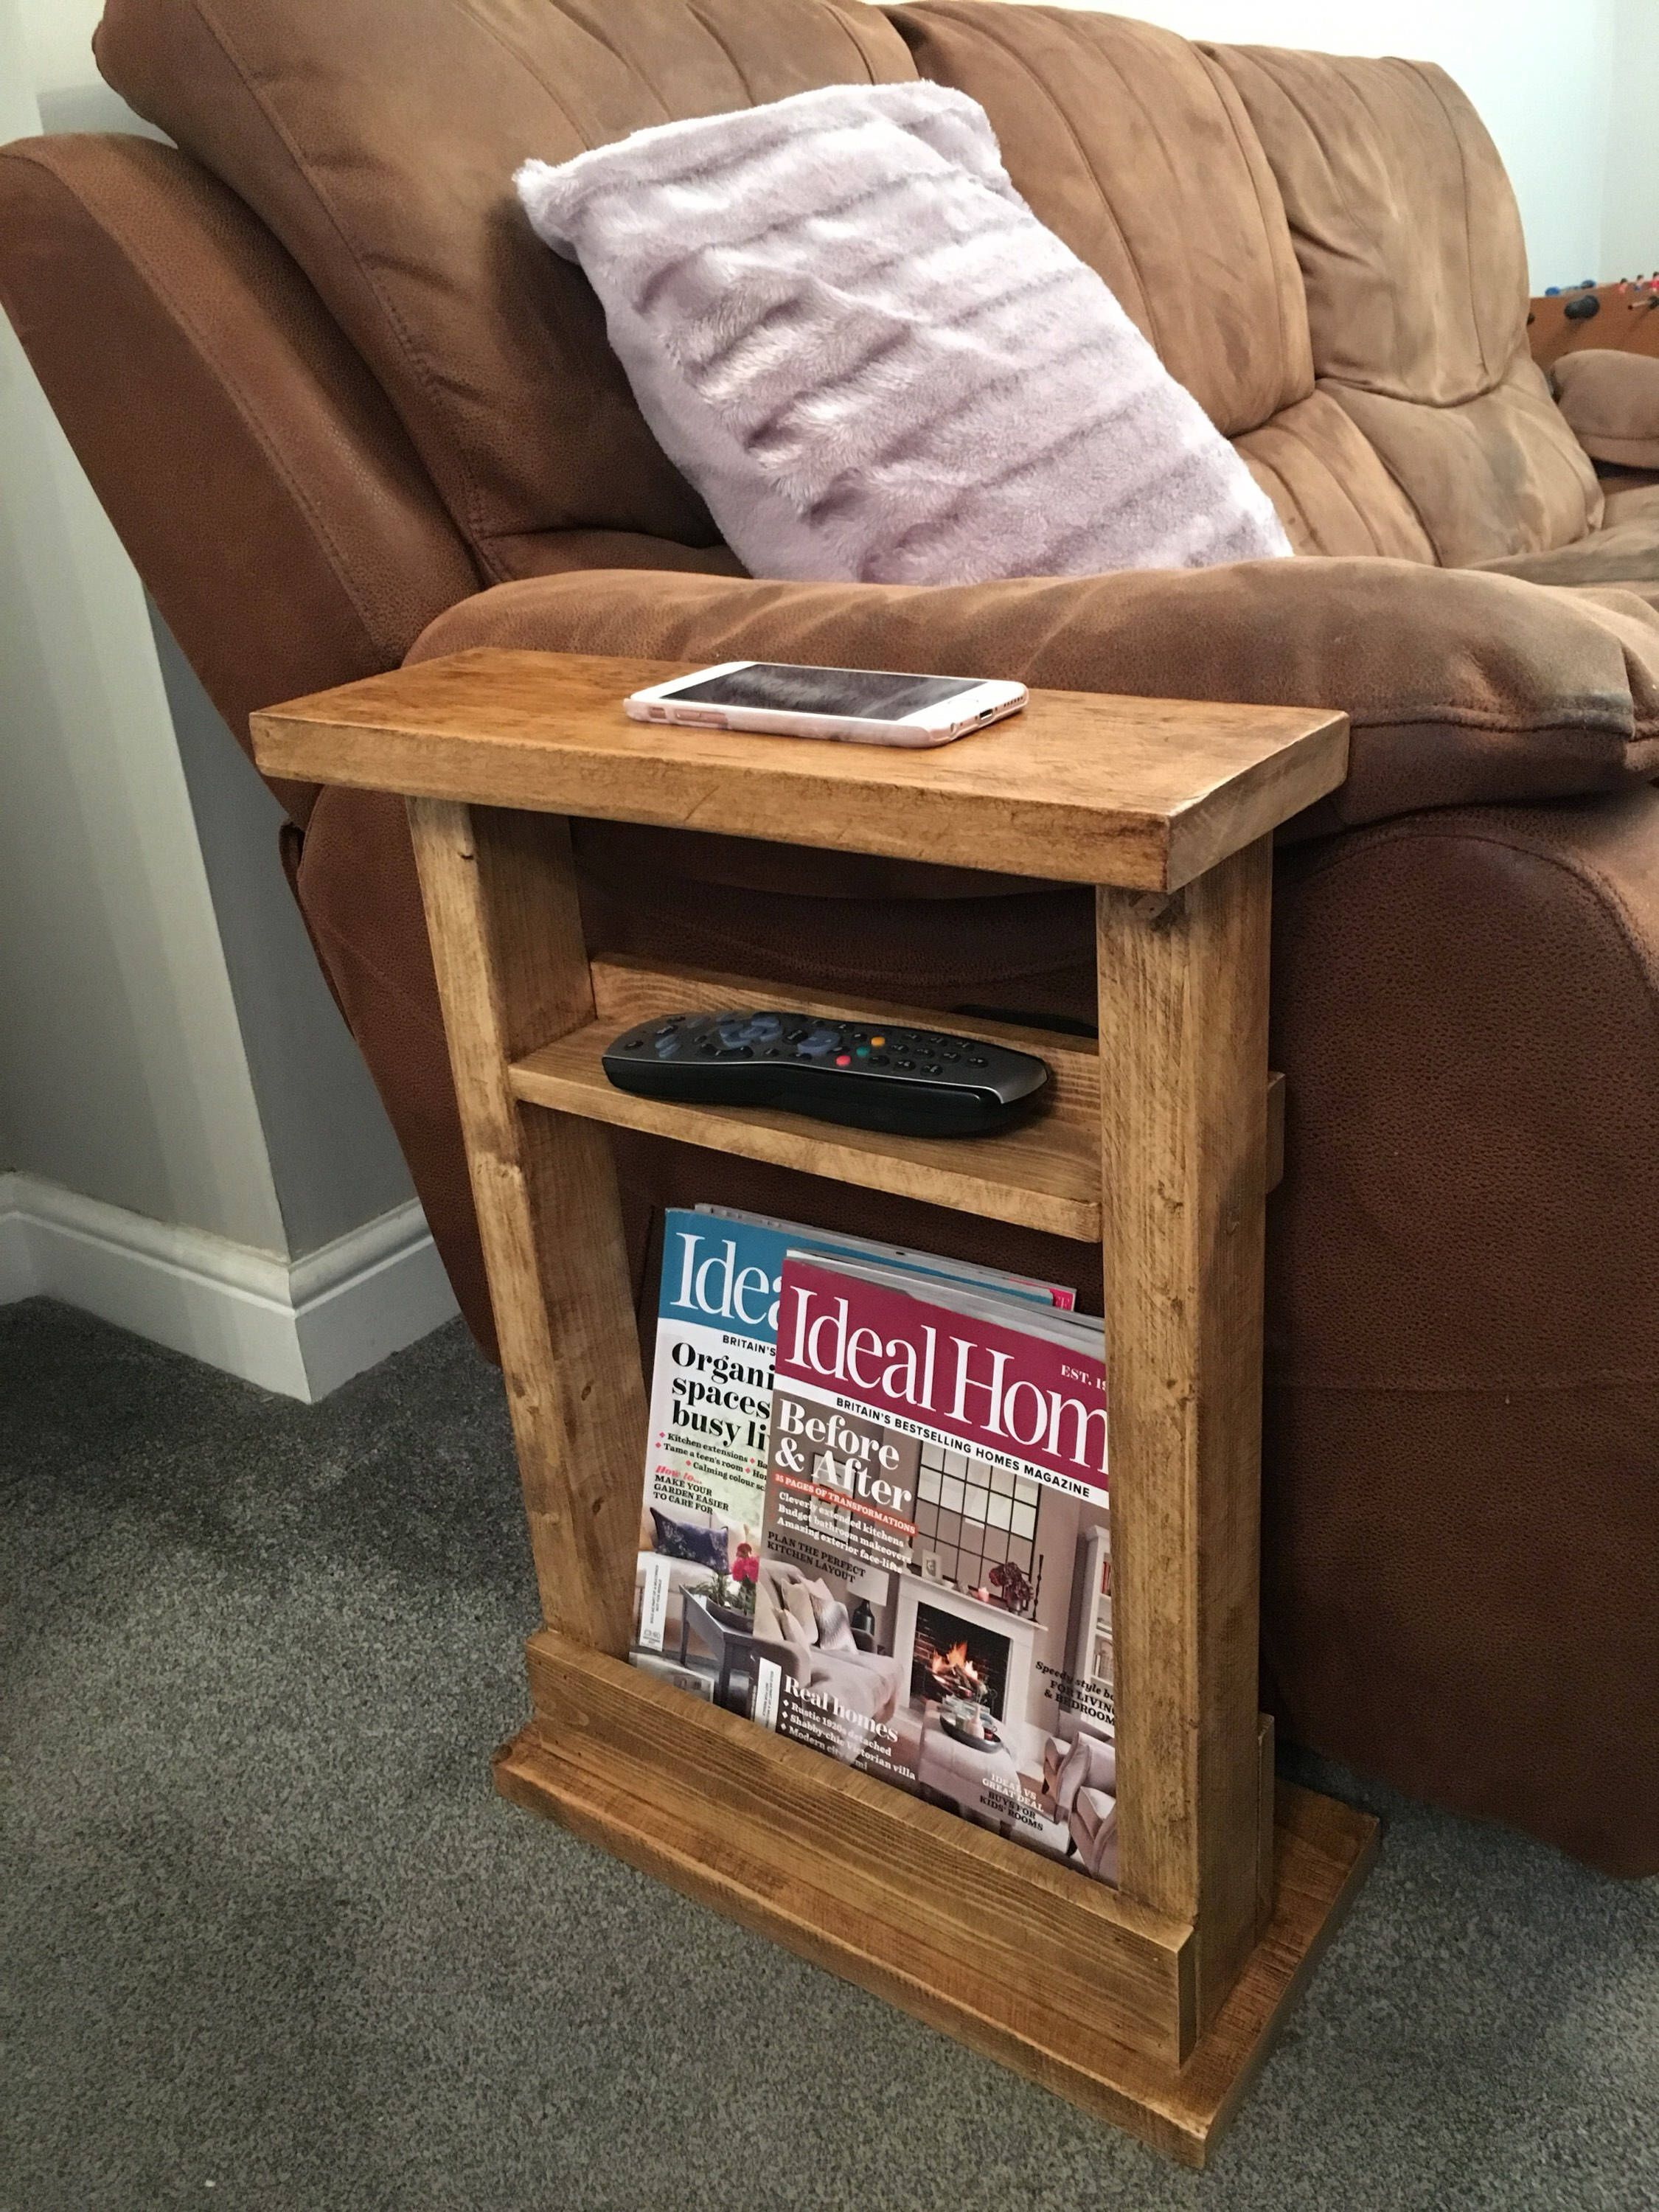 Narrow Side Table Slim Side Table End Table Sofa Table Magazine Rack Settee Table Rustic Quebec Pine By R Sofa End Tables End Table Plans Man Cave Table